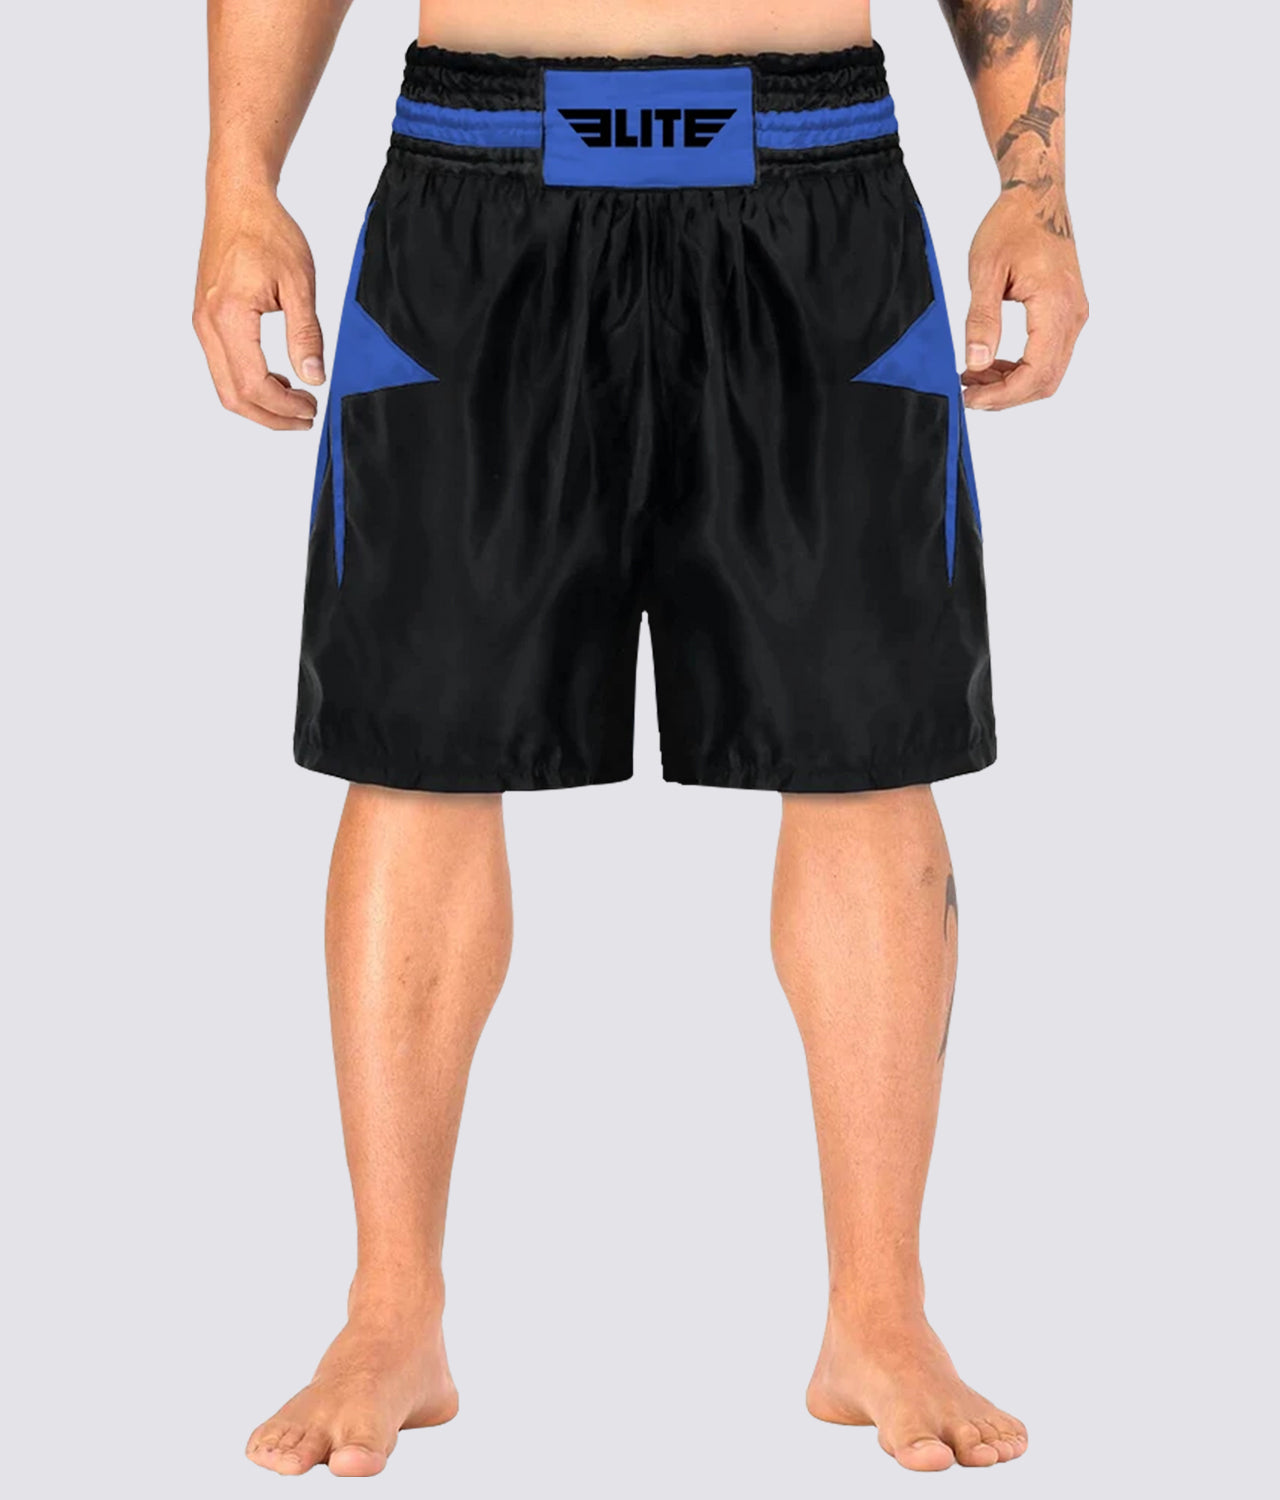 Elite Sports Star Series Sublimation Extreme Softness Black/Blue Boxing Shorts